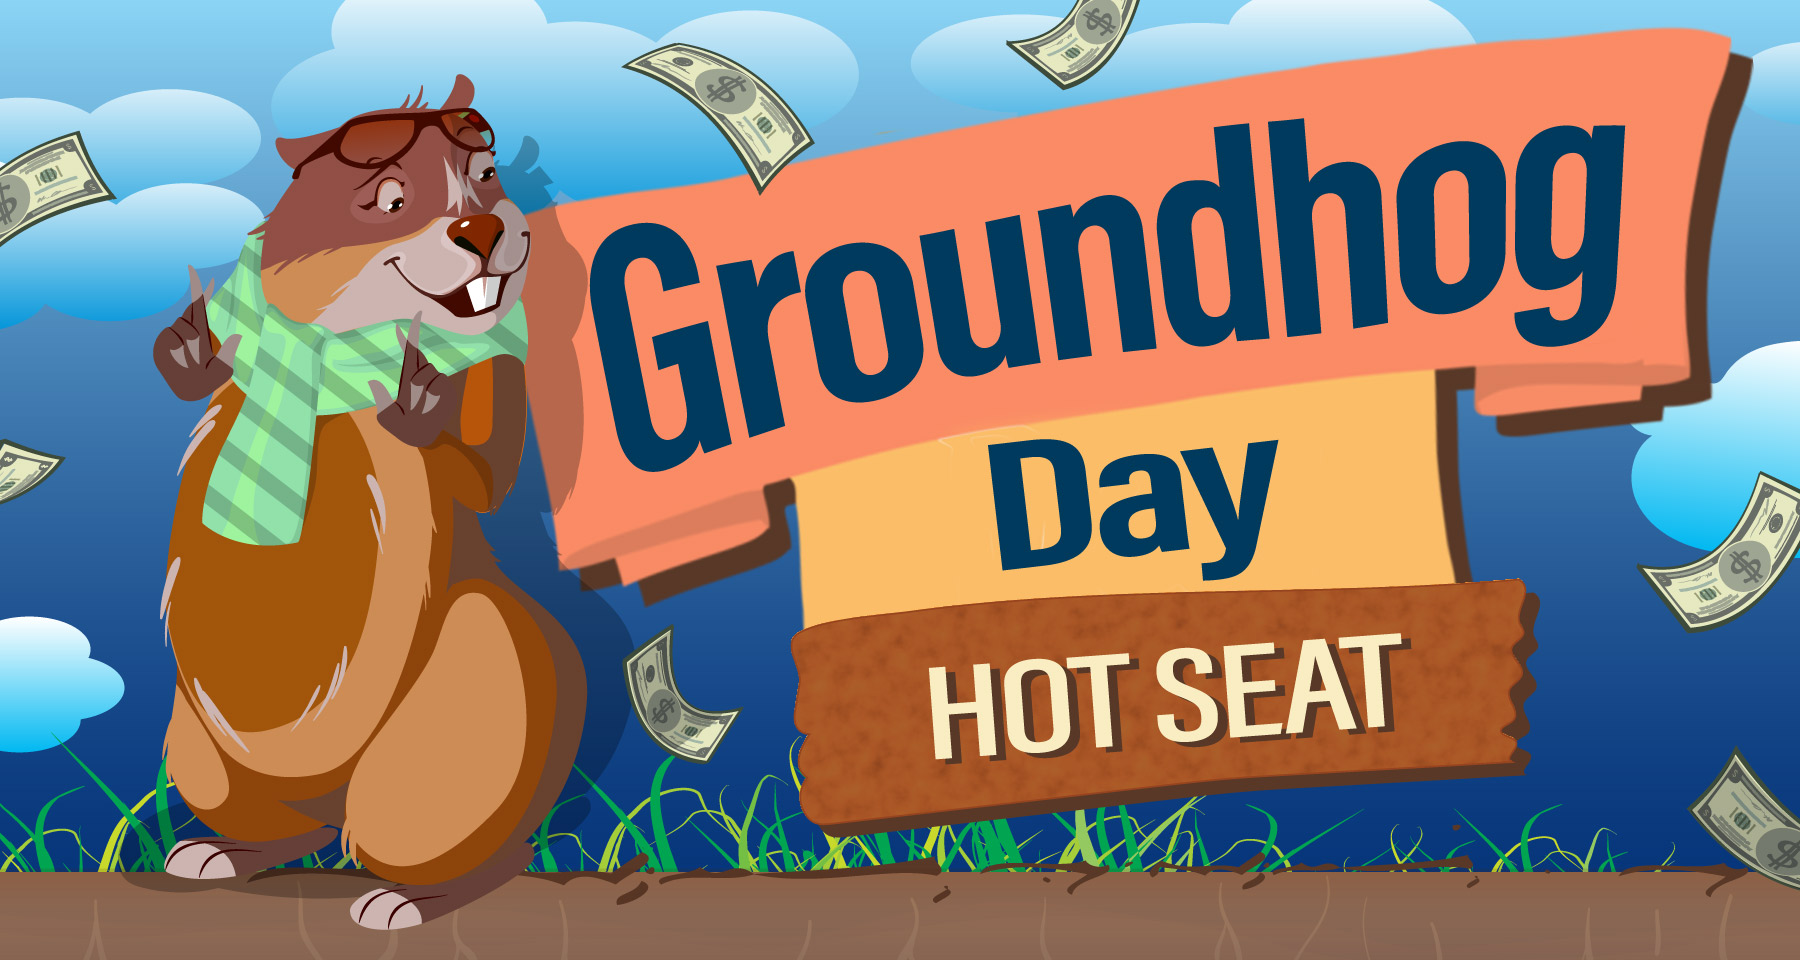 Groundhog Day Hot Seat